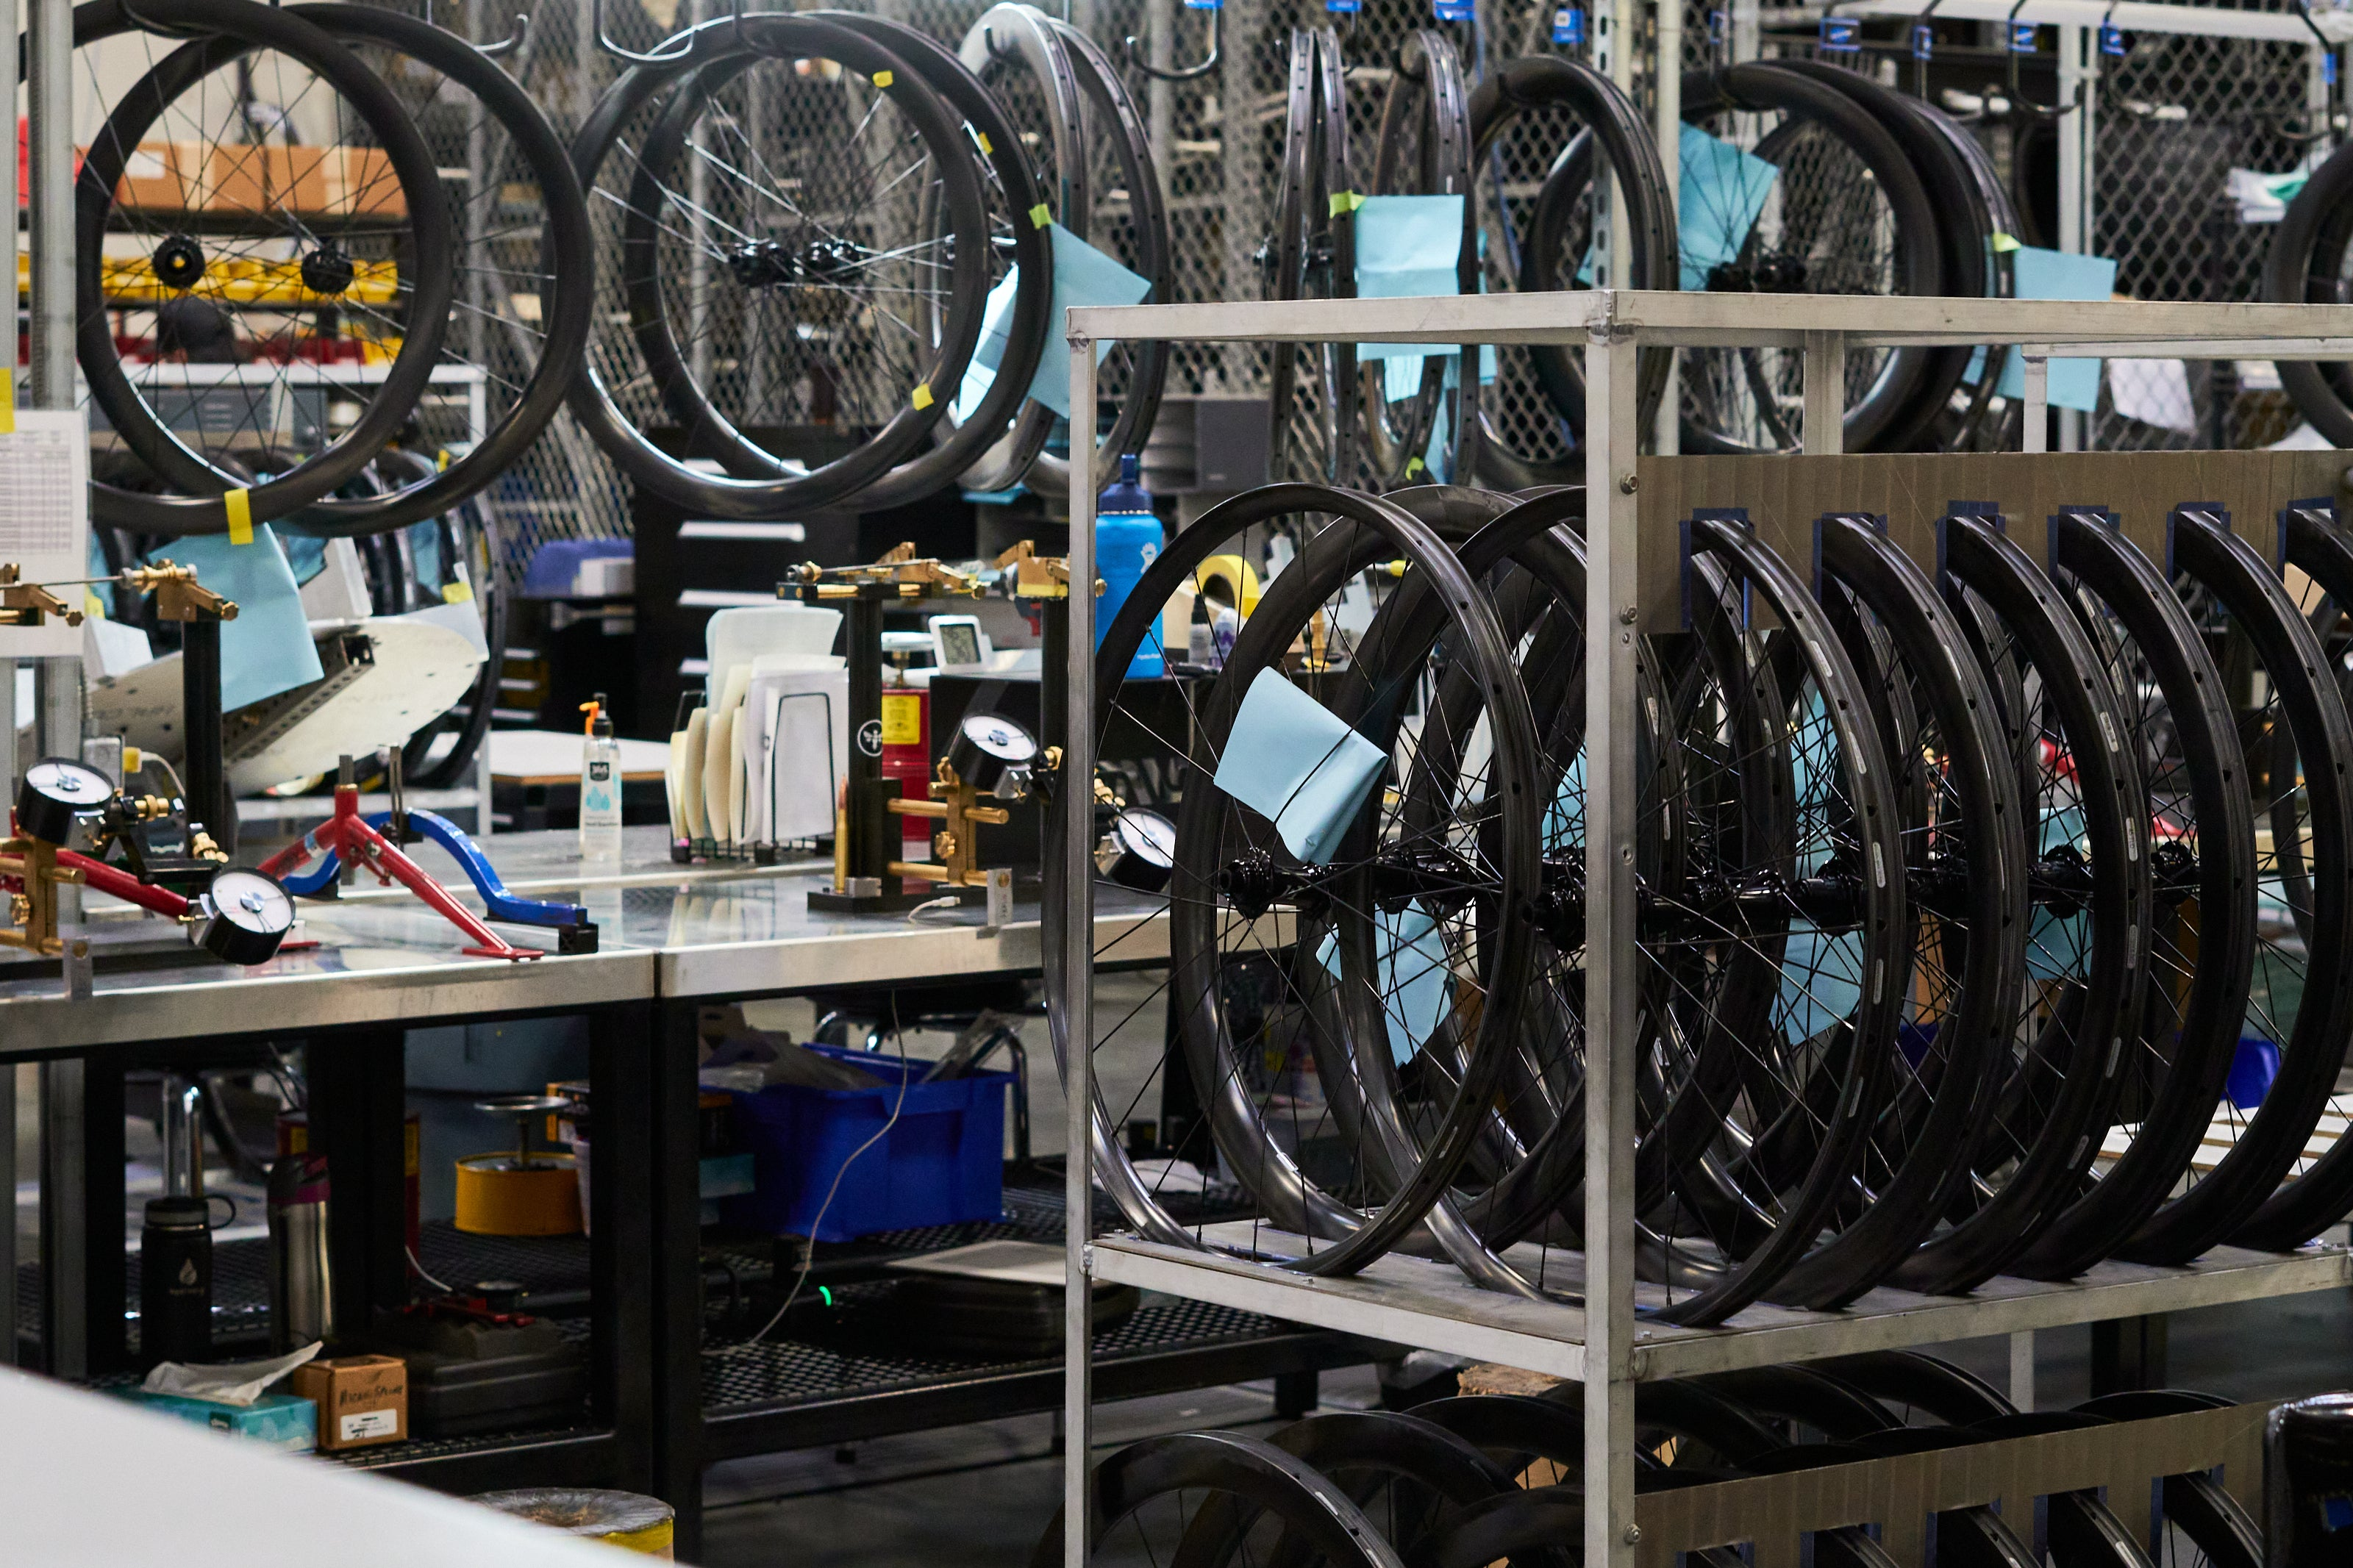 ENVE Factory tour with Contender Bicycles - wheel building